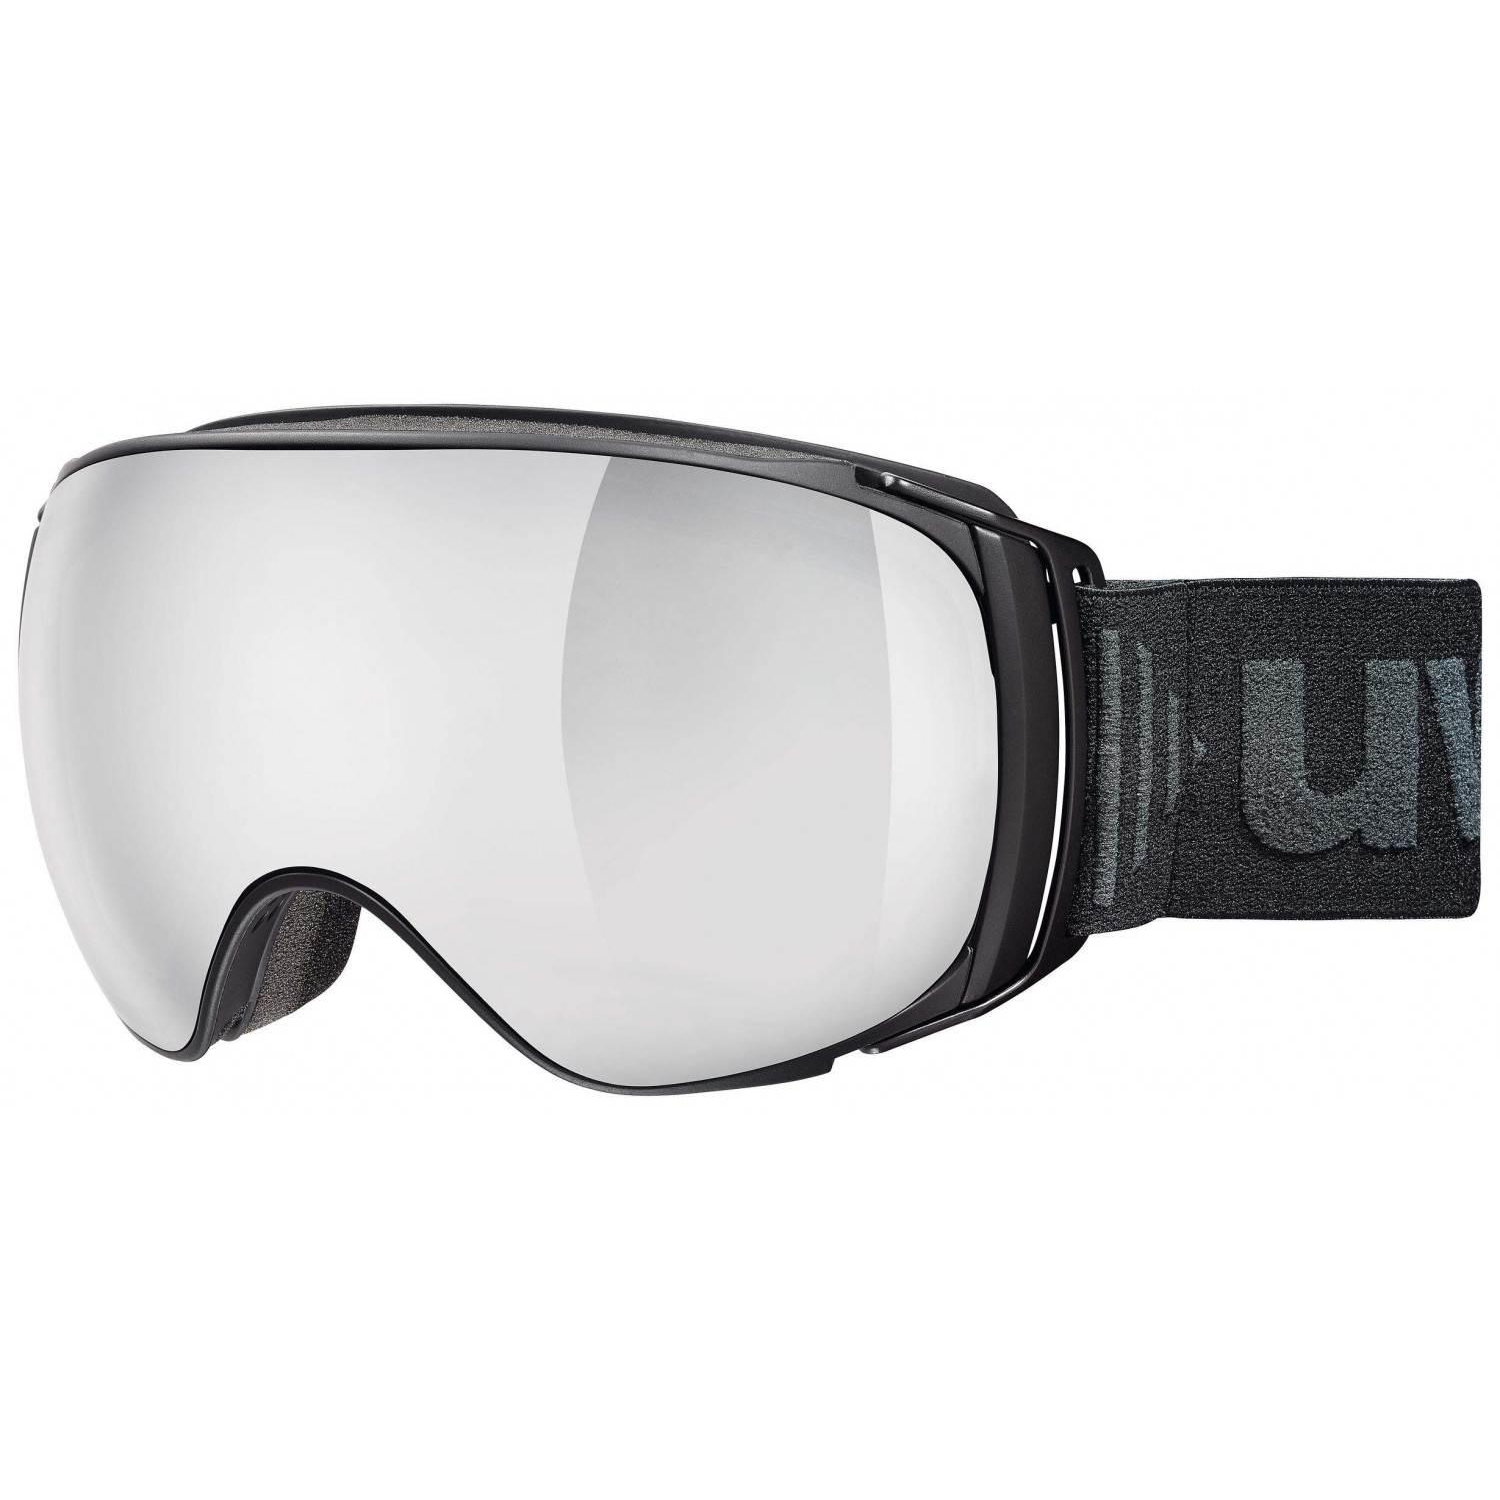 Uvex sportive Fm black dl/silver -clear S5505802030 Skibrille